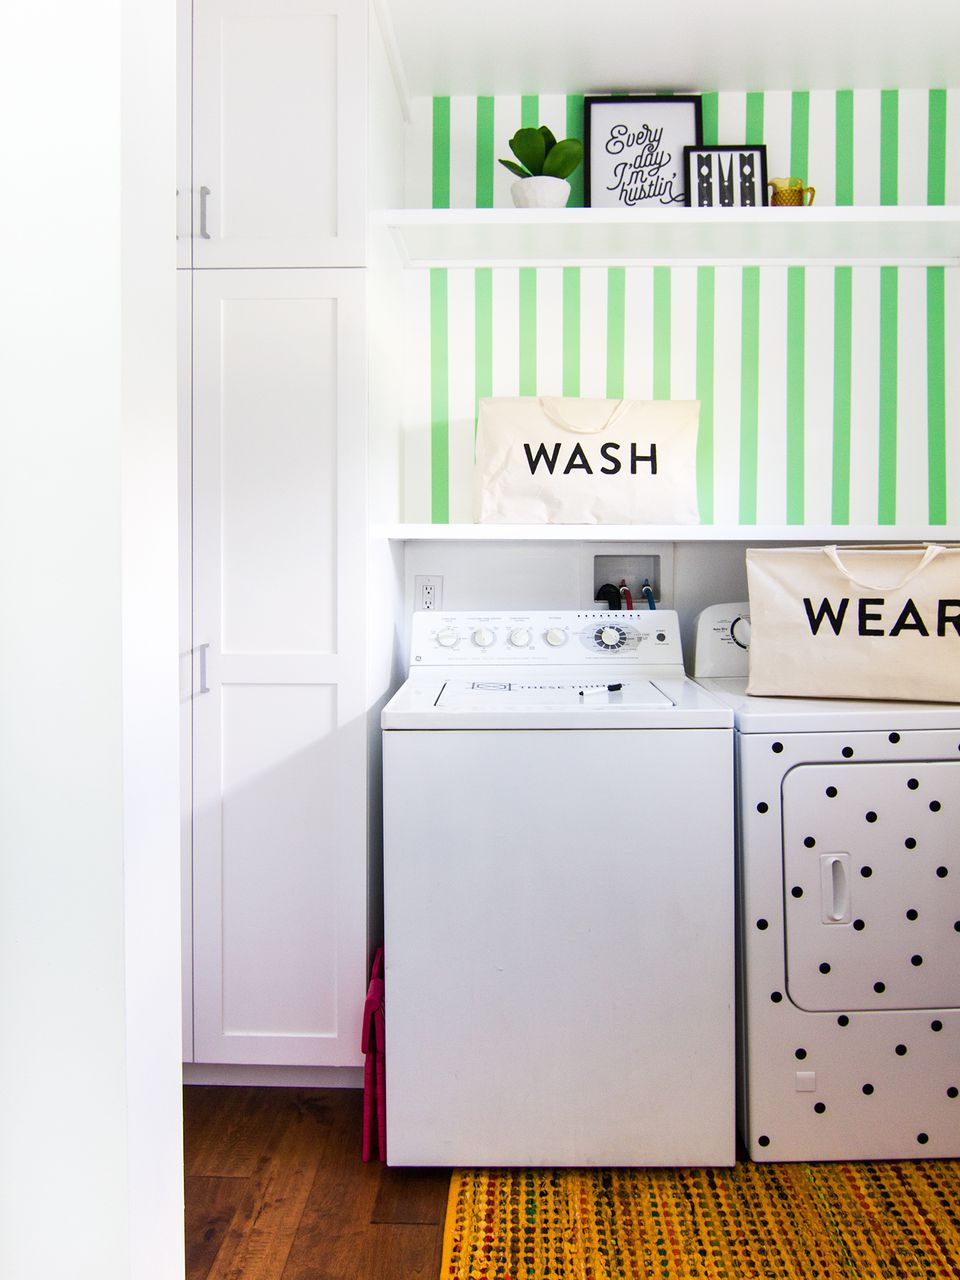 20 clever diy laundry room ideas diy laundry room storage baskets solutioingenieria